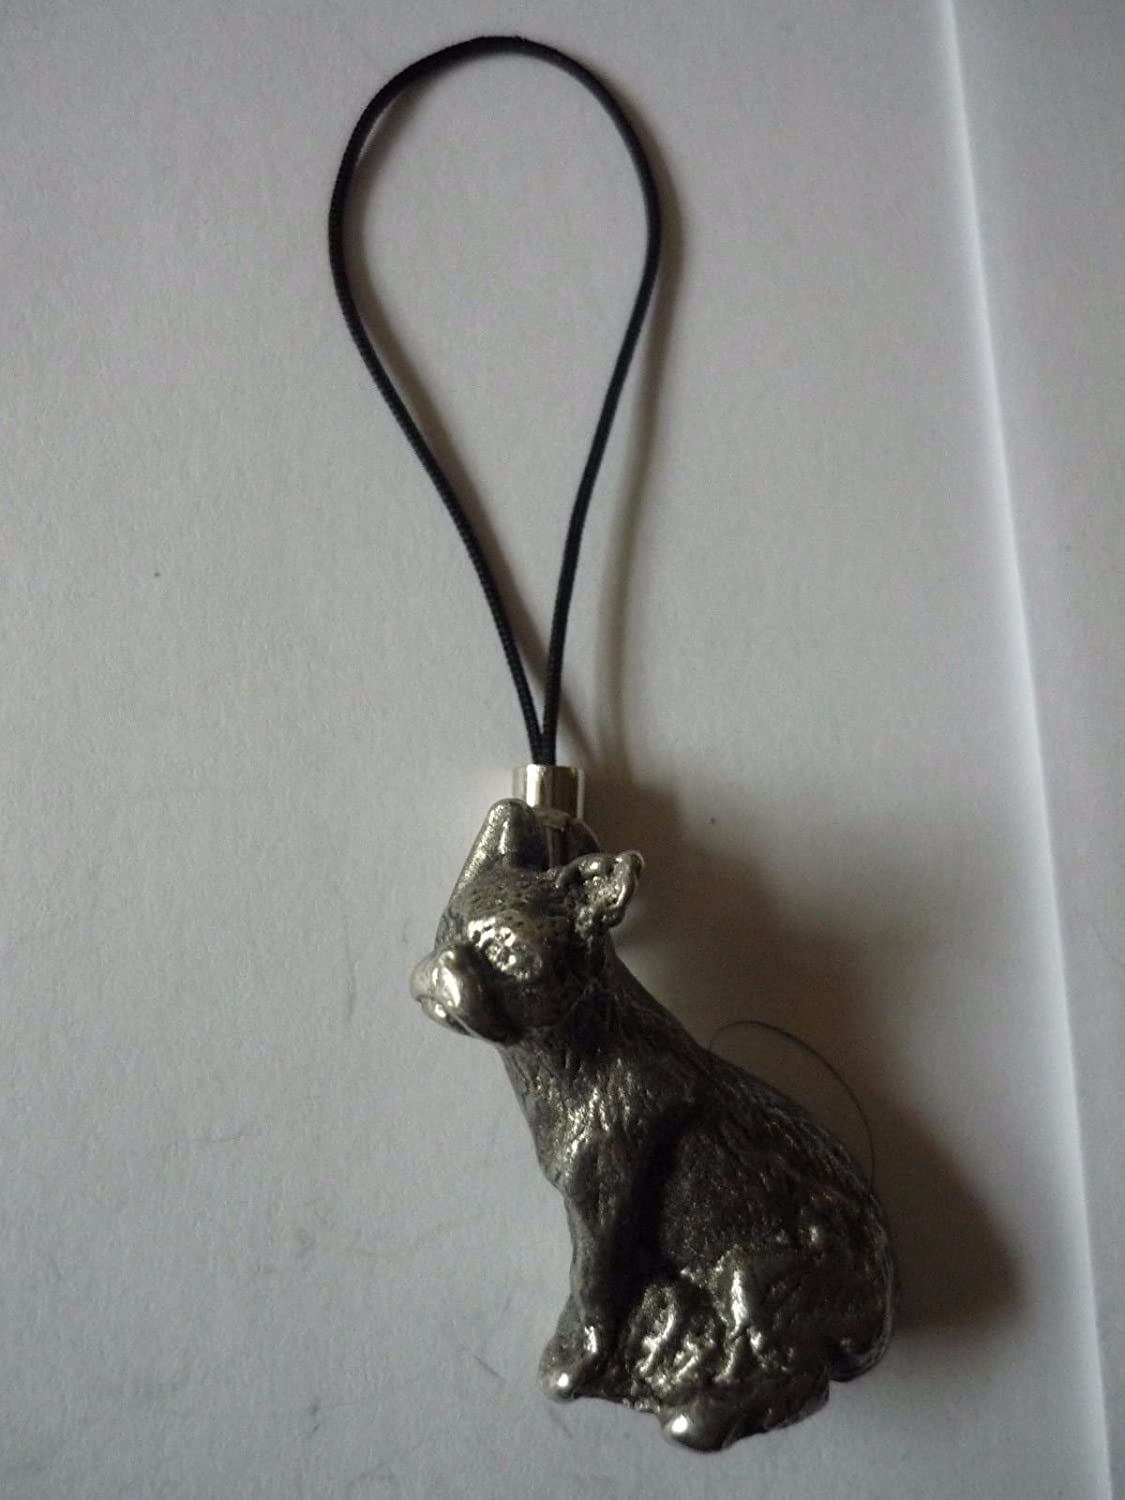 French Bulldog Dog tg8 Made From Modern English pewter Mobile Phone charm POSTED BY US GIFTS FOR ALL 2016 FROM DERBYSHIRE UK /…